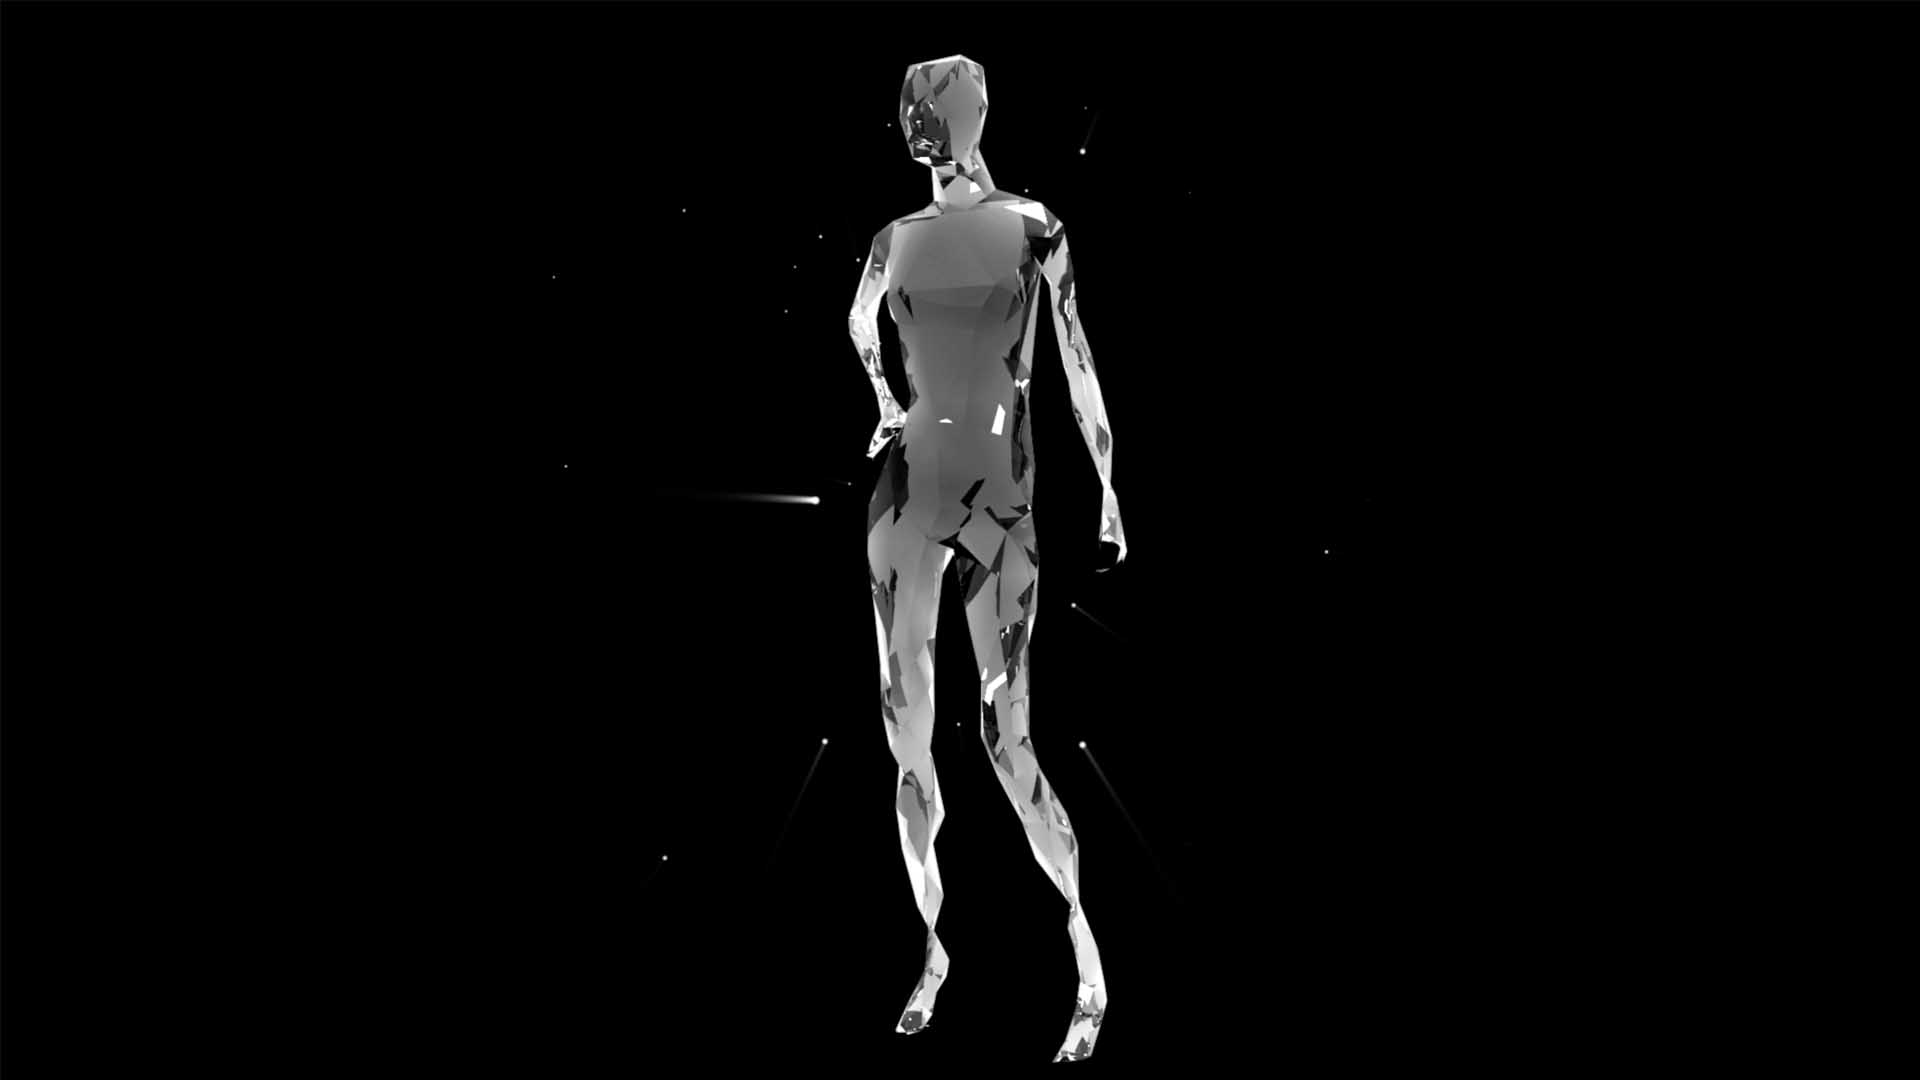 Liquid_Geometry_Statue_Isolated_on_Black_Background_Video_VJ_loop Human